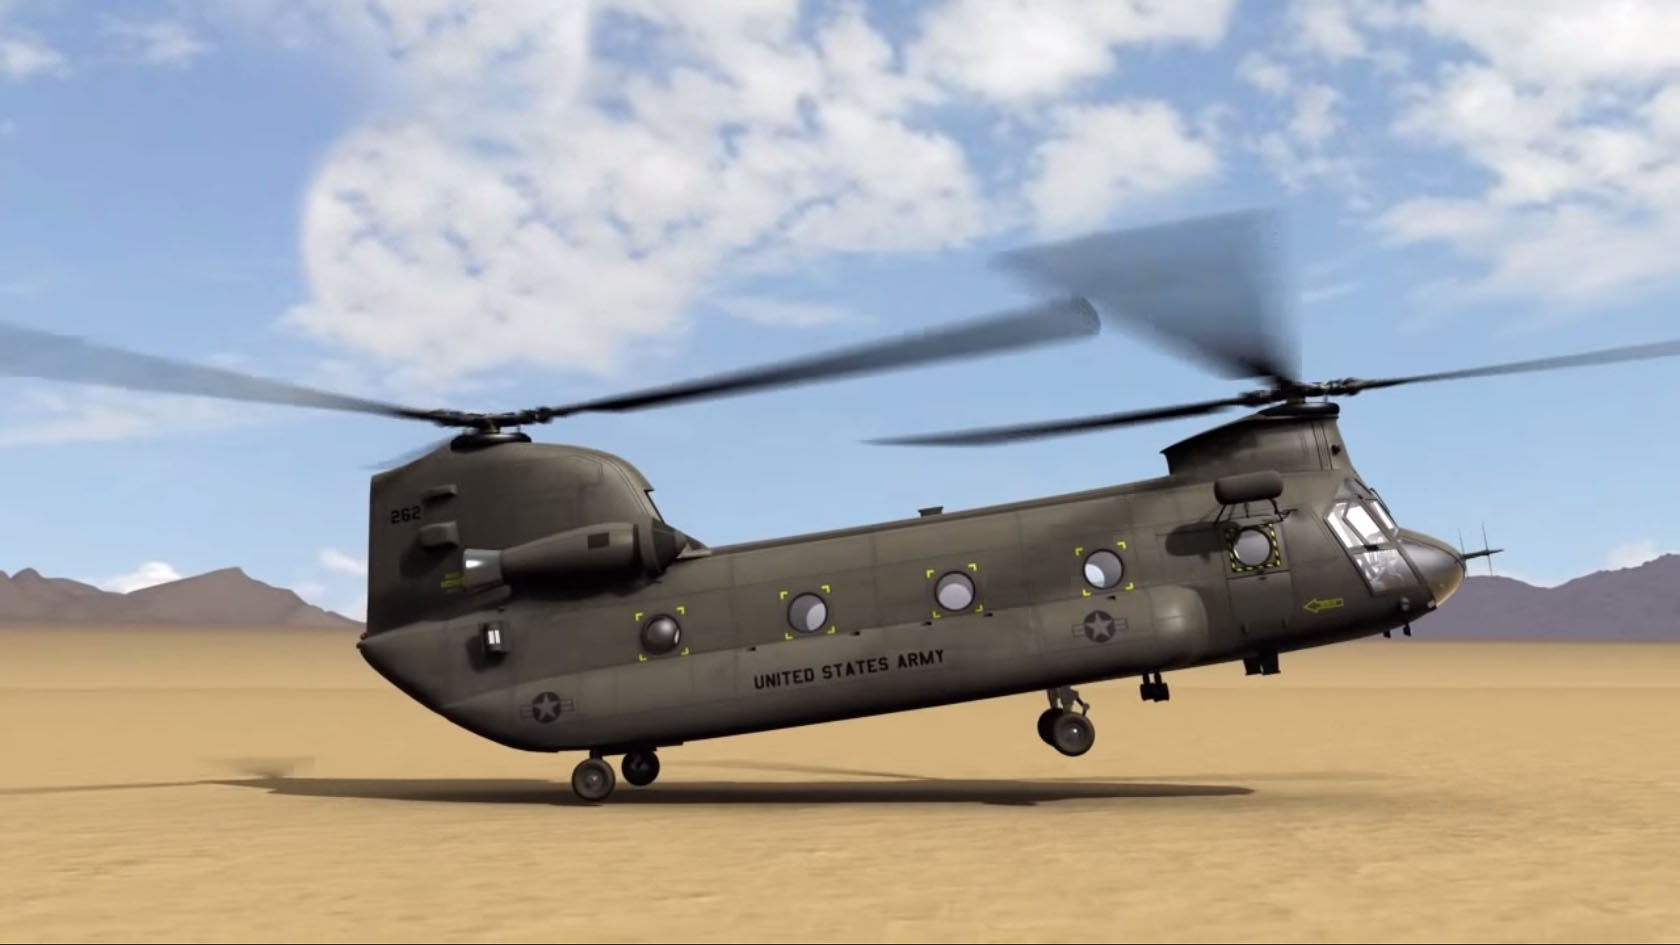 Frame Extracted From A 3D Animation Of A CH-47 Dual-rotor Helicopter.